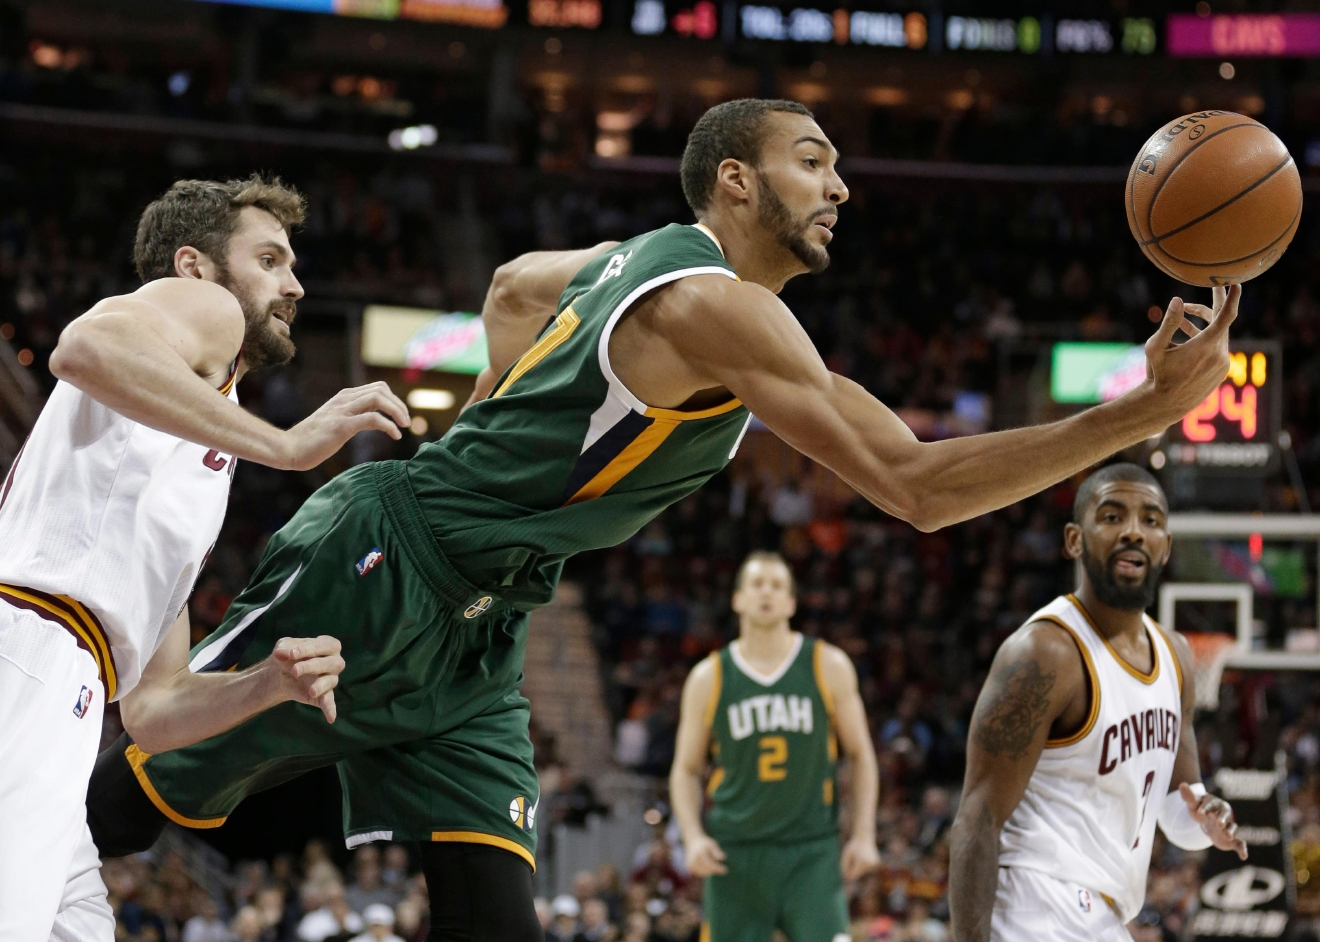 Utah Jazz' Rudy Gobert, right, grabs a rebound ahead of Cleveland Cavaliers' Kevin Love, left, in the first half of an NBA basketball game, Thursday, March 16, 2017, in Cleveland. (AP Photo/Tony Dejak)